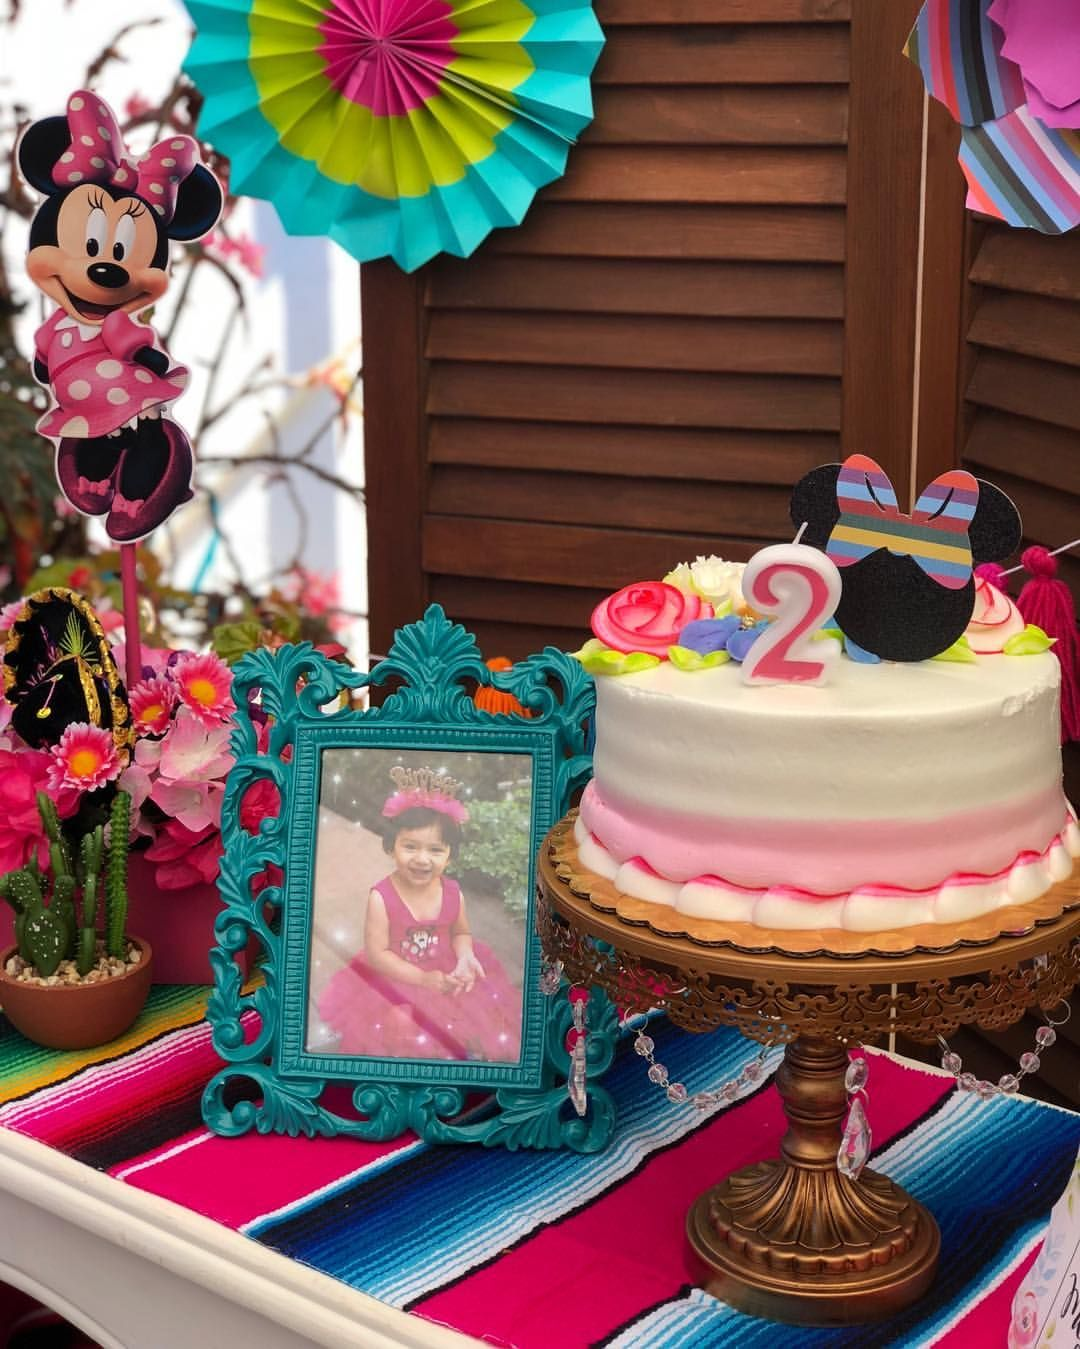 Chicpartygoods On Instagram Minnie Mouse Cutouts With Serape Bows Were So Cute Wanted To Use Them Everywhere Here I Used As A Cake Topper You